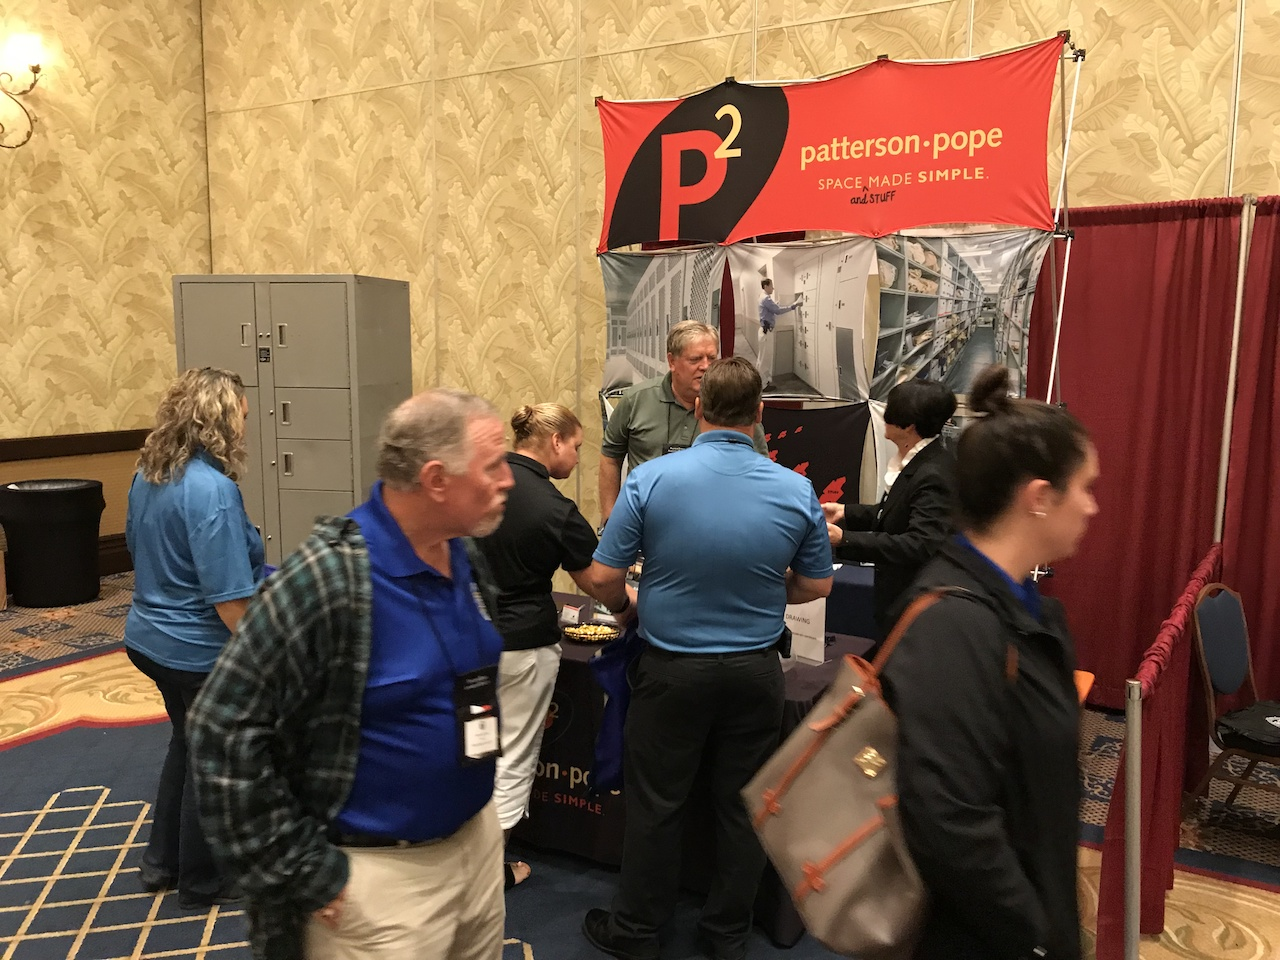 patteron-pope-vendor-booth